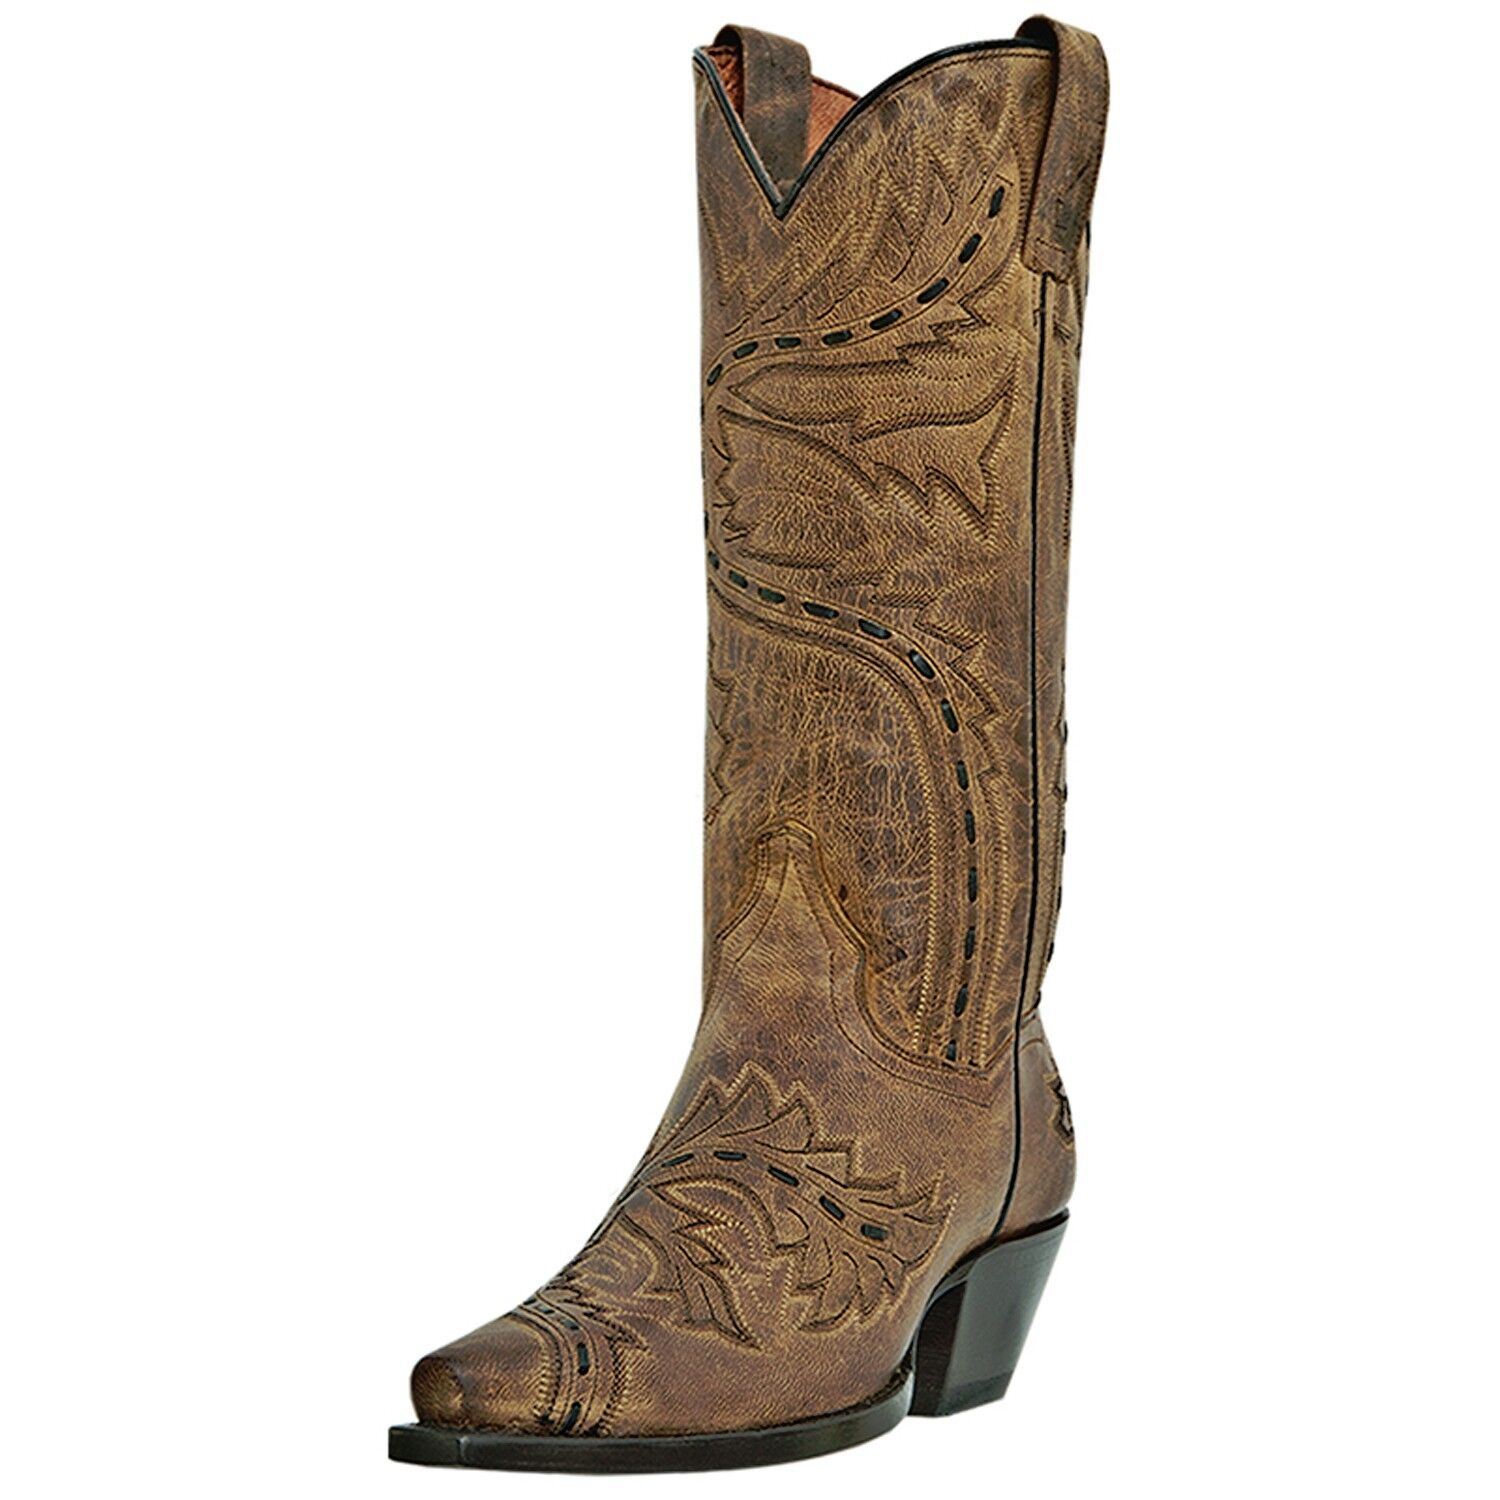 Dan Post Sidewinder Snip Toe Cowgirl Boot Tan DP3422